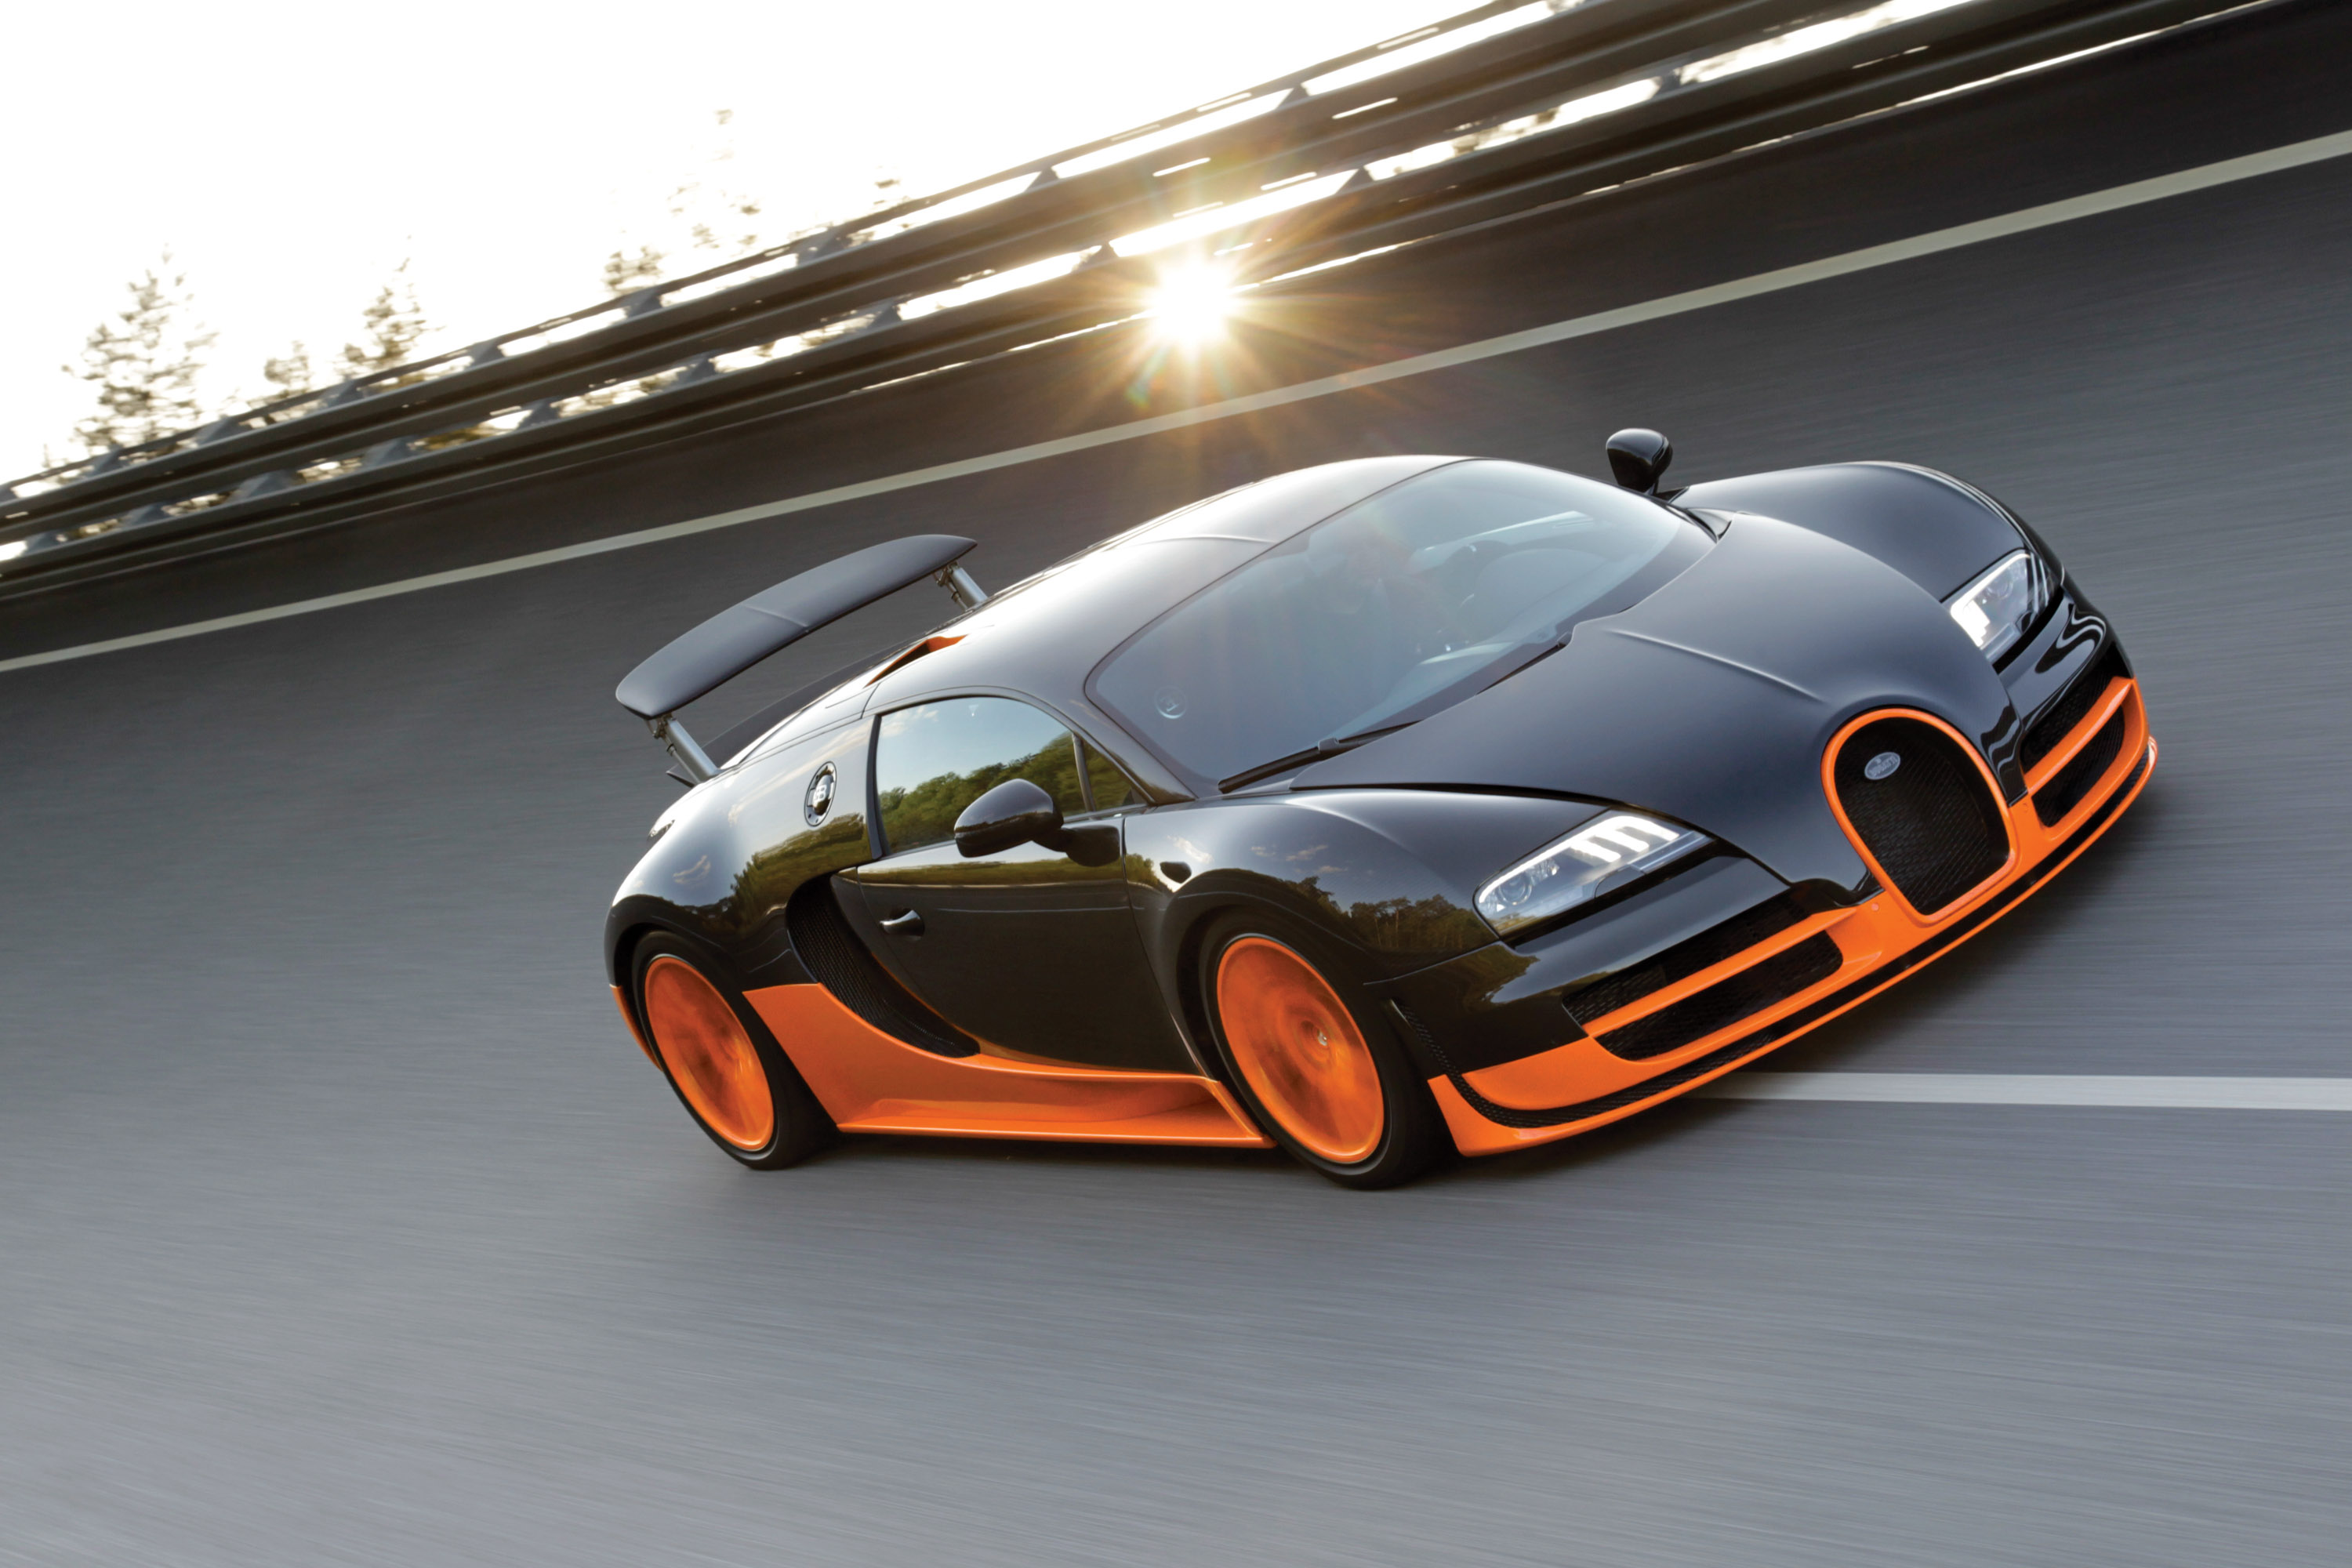 bugatti introduces veyron 16 4 super sport world record edition. Black Bedroom Furniture Sets. Home Design Ideas